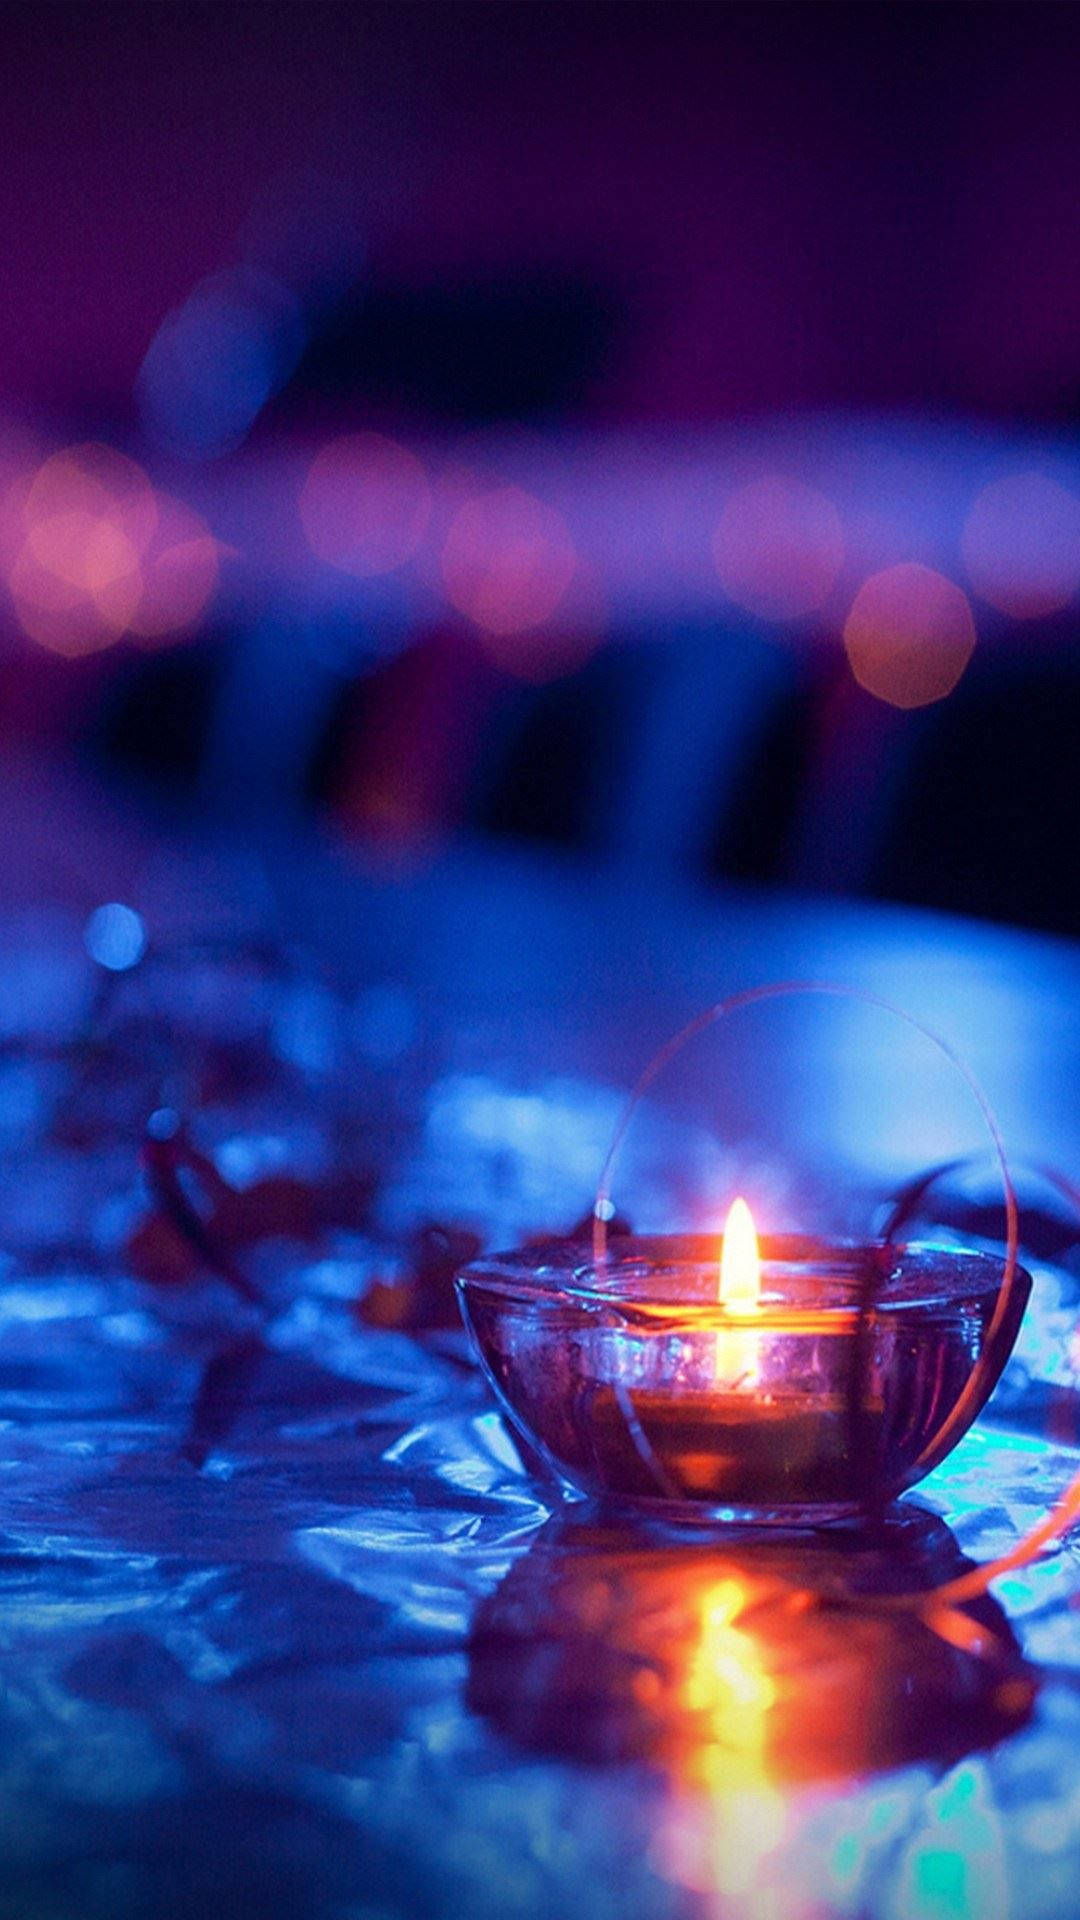 1080x1920 Macro Lit Candle Android Wallpaper free download